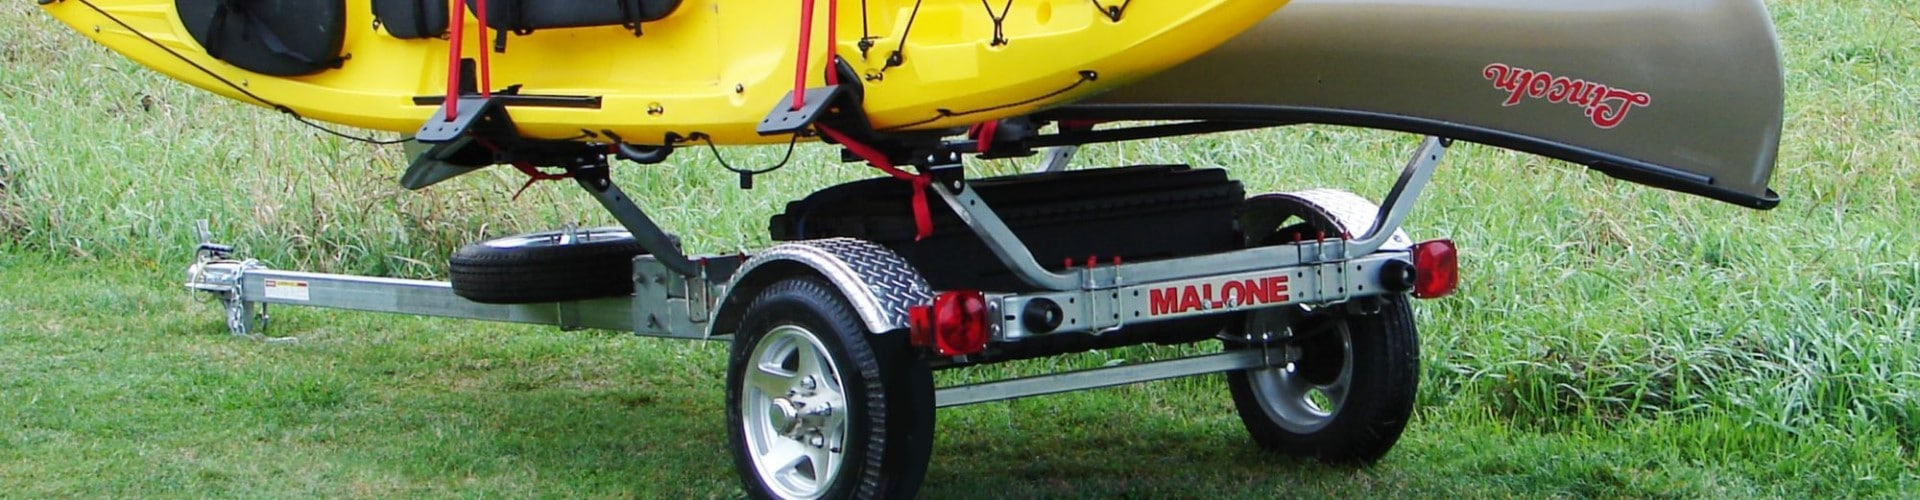 Best Kayak Trailers Reviewed in Detail